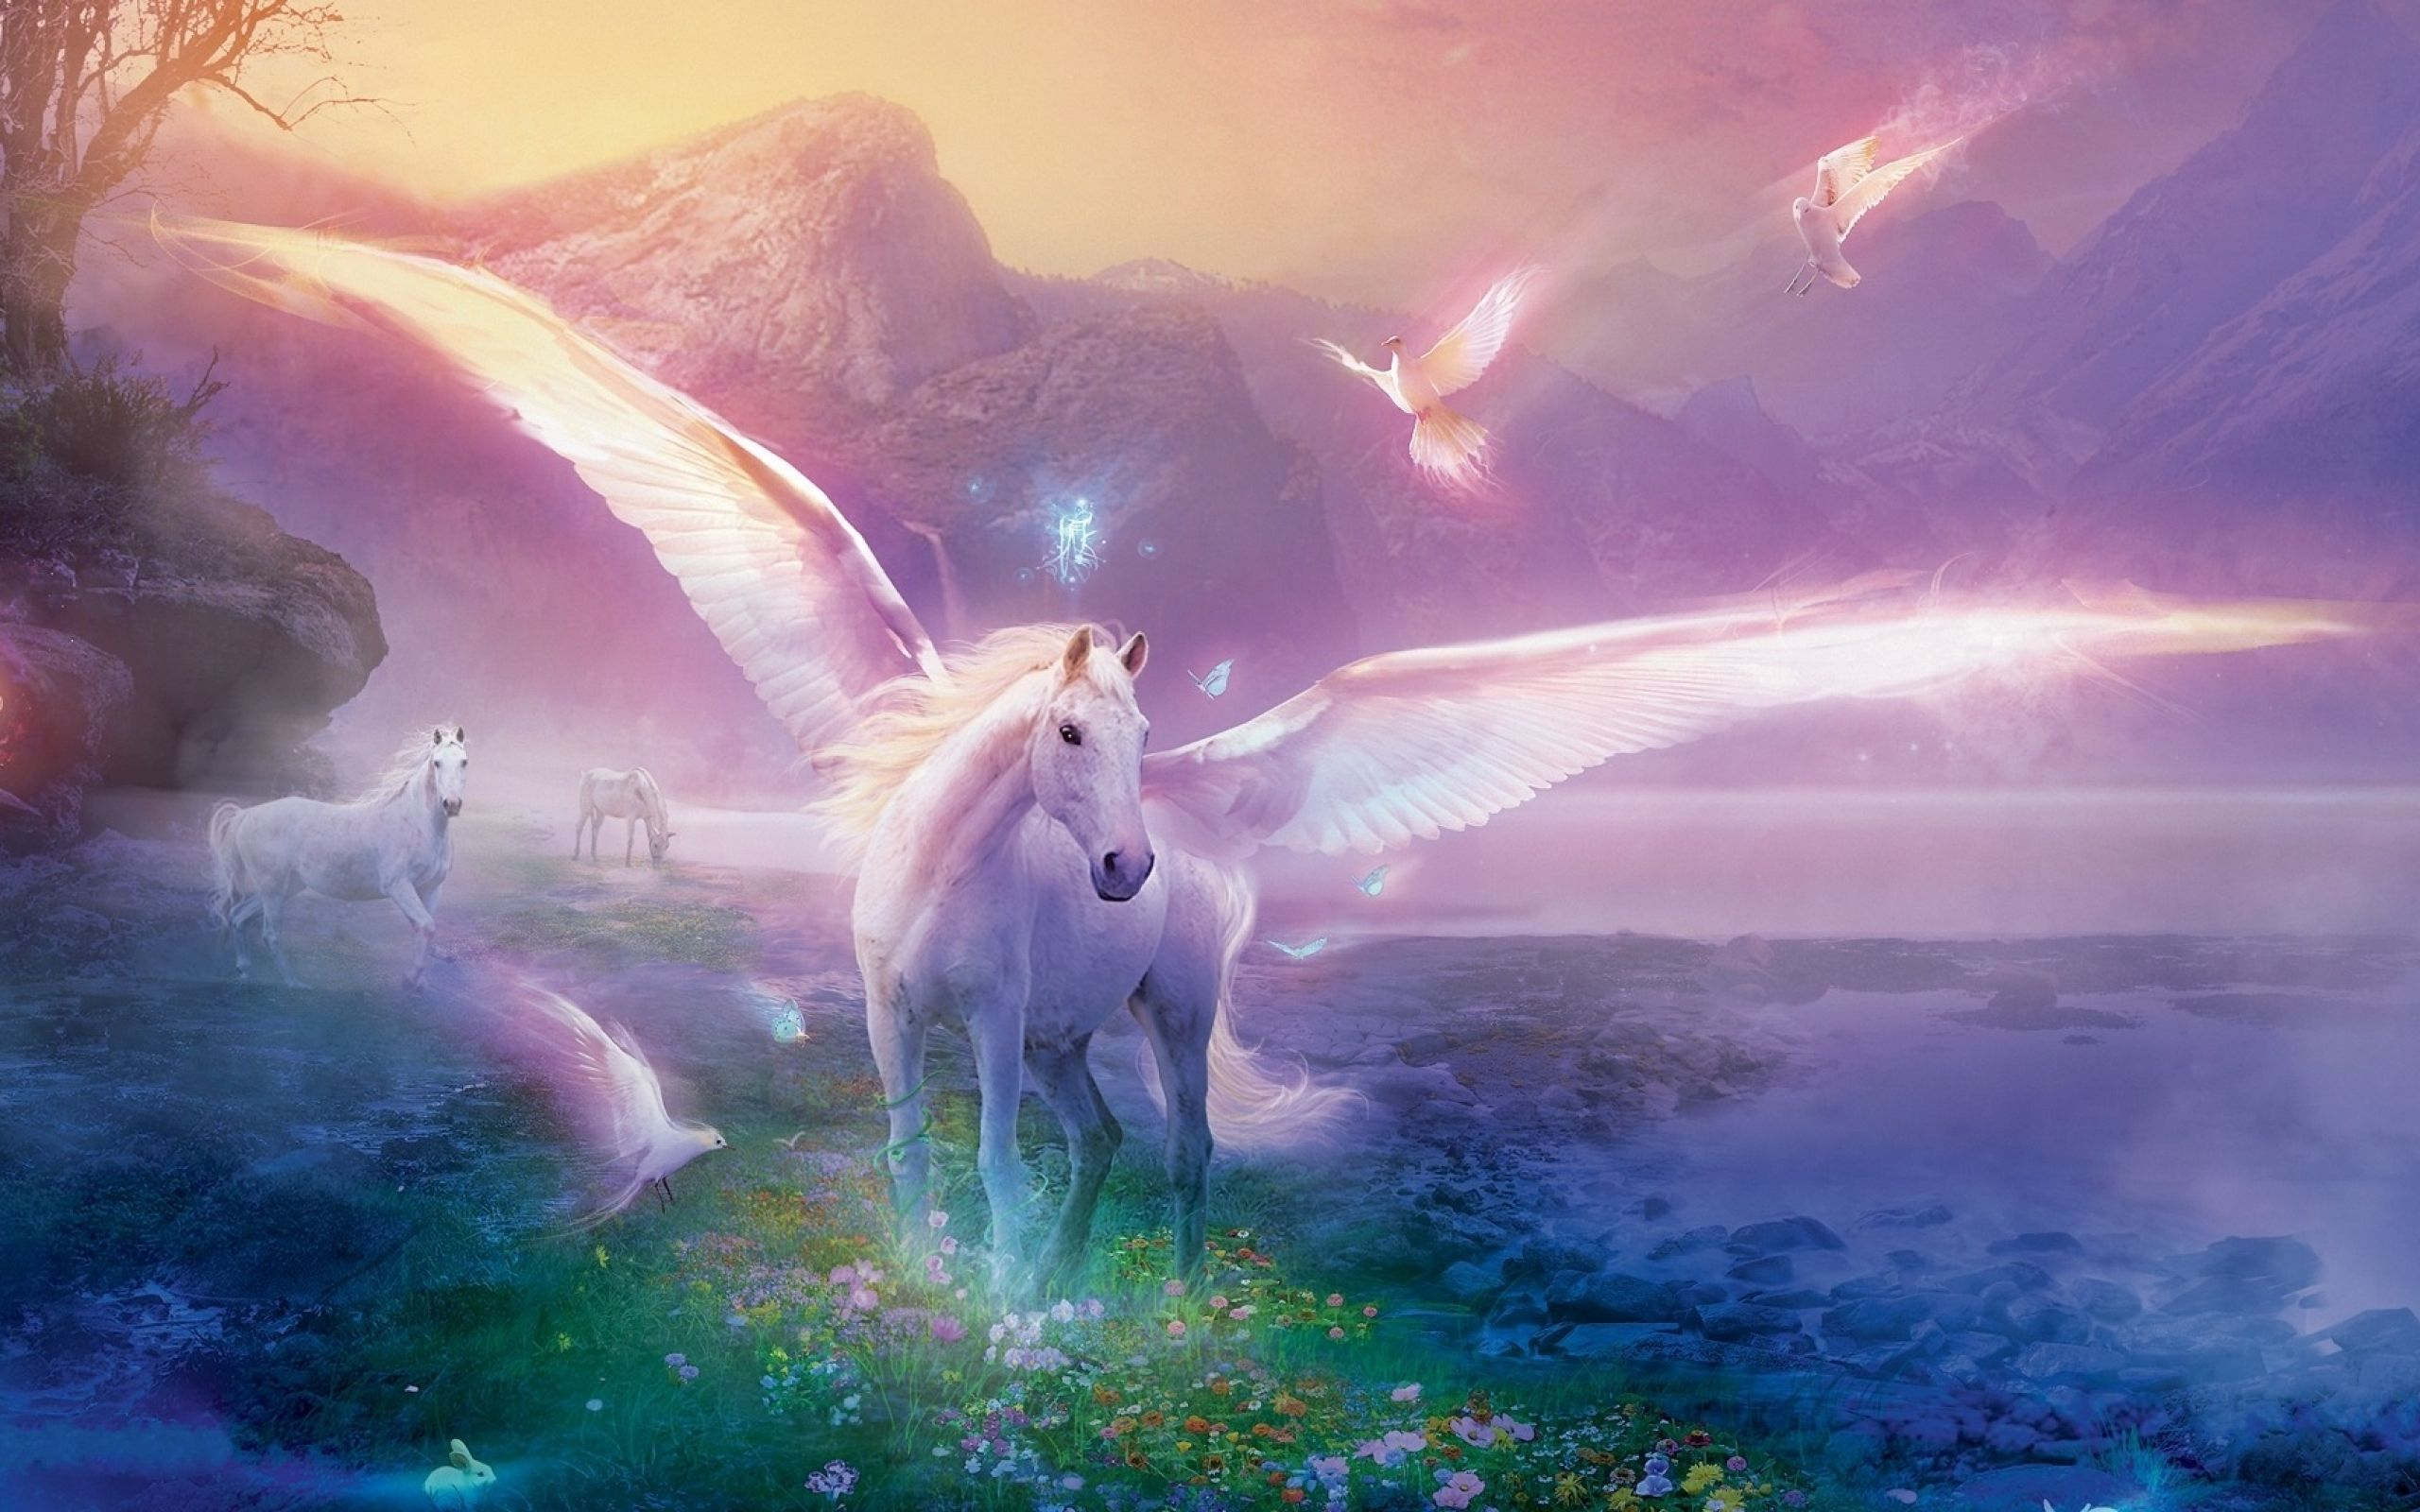 Download 2560x1600 Fantasy Unicorn Wallpaper/Background ID